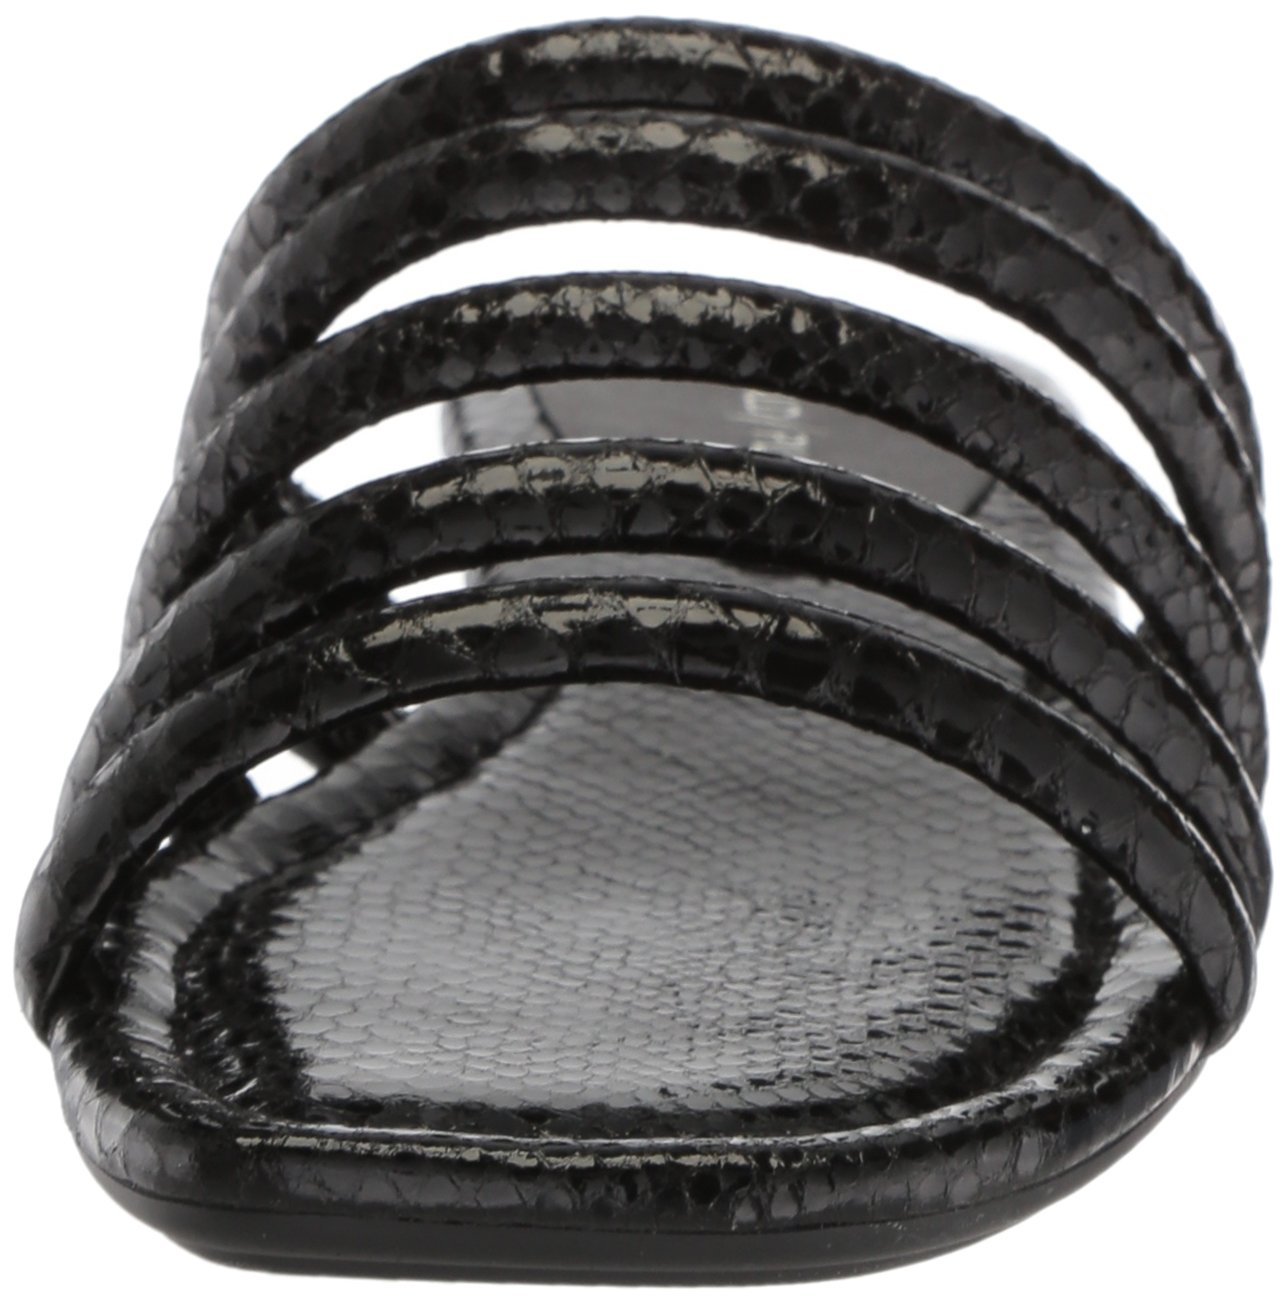 Donald J Pliner Women's Kip Slide US|Black Sandal B0756CLWBD 8 B(M) US|Black Slide df196d